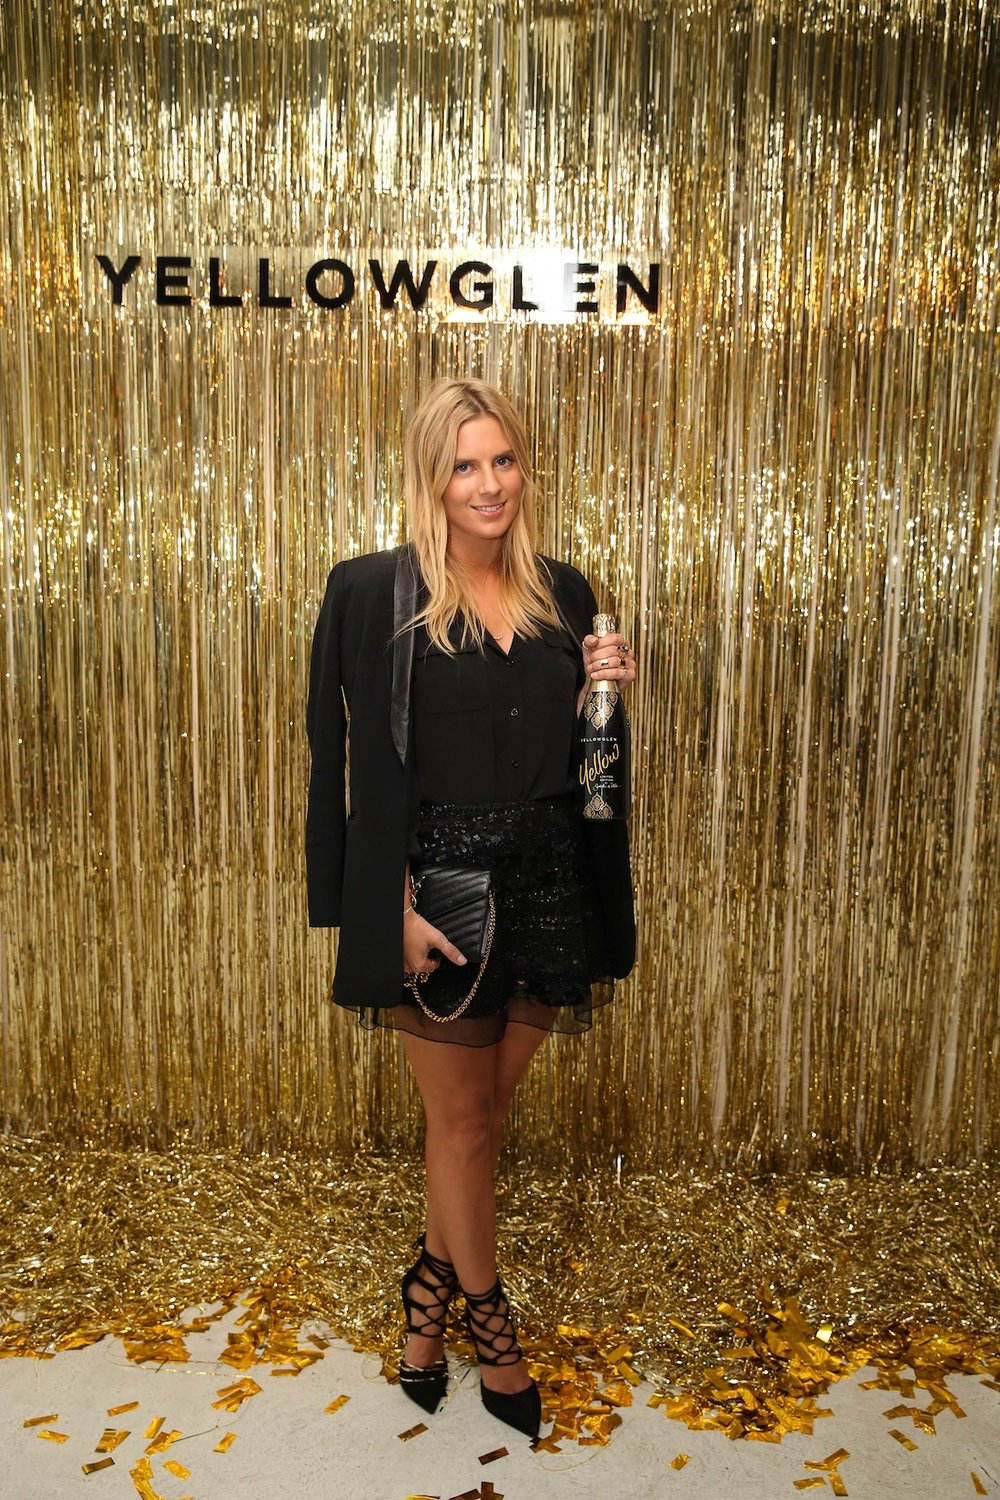 yellowglen-sparkle-launch-lisa-hamilton.jpg